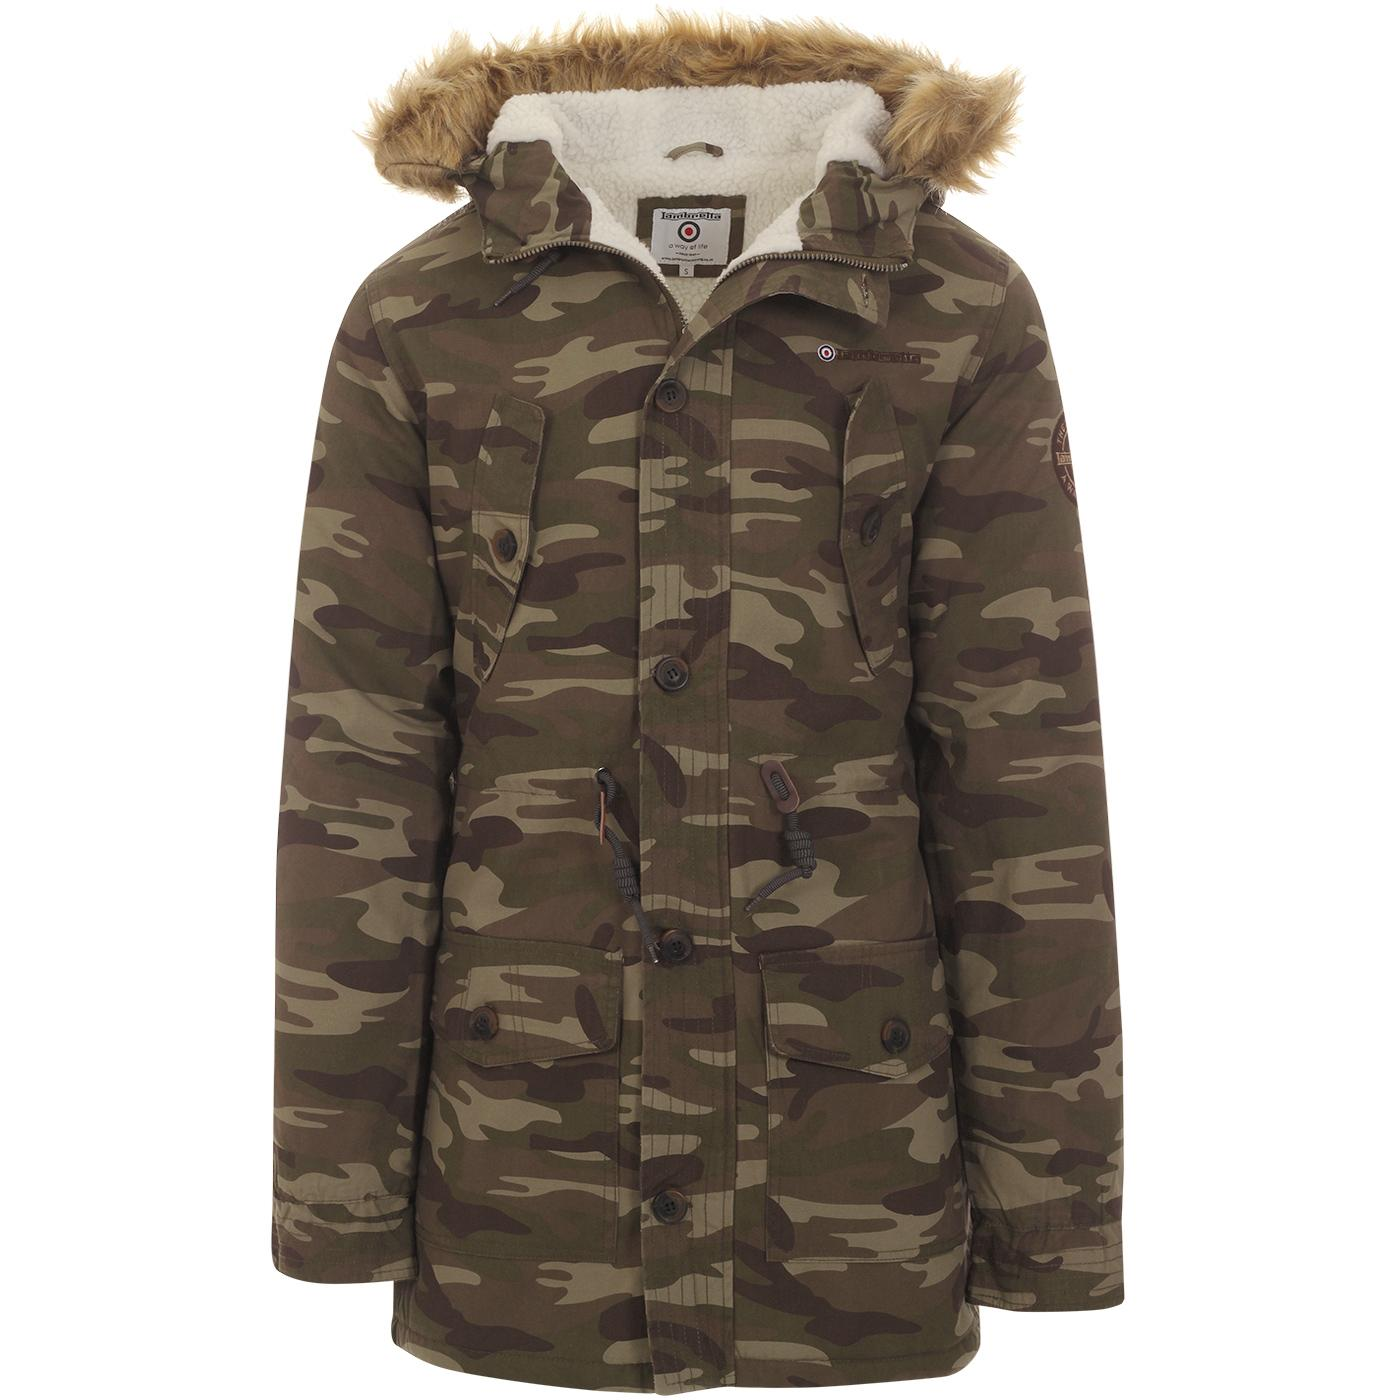 LAMBRETTA Mod Camo Hooded Fishtail Parka Jacket